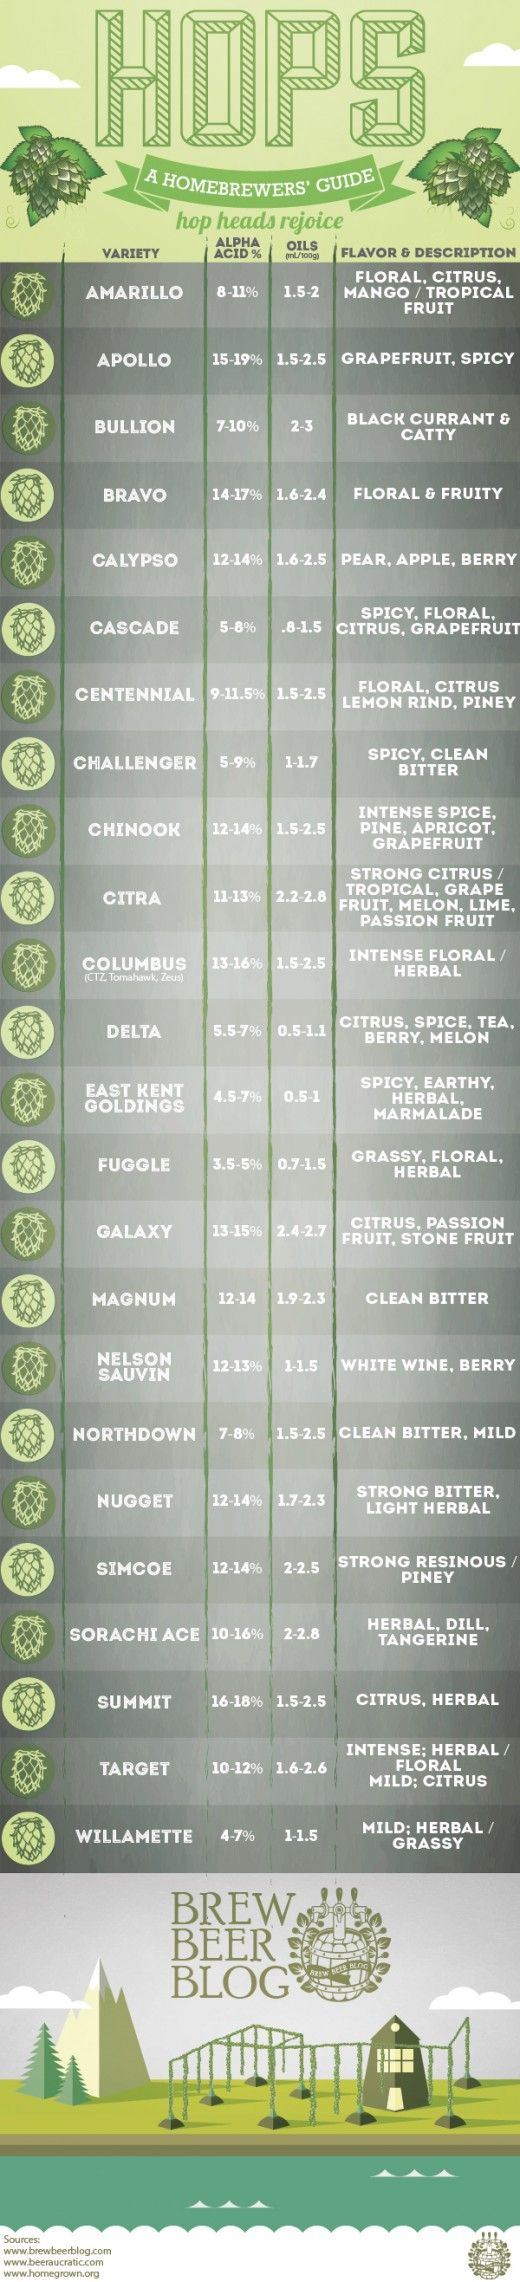 Hops Guide: We love beers with rare hops here at the Missing Drink. Why not check out some of our beer reviews? http://www.themissingdrink.com/